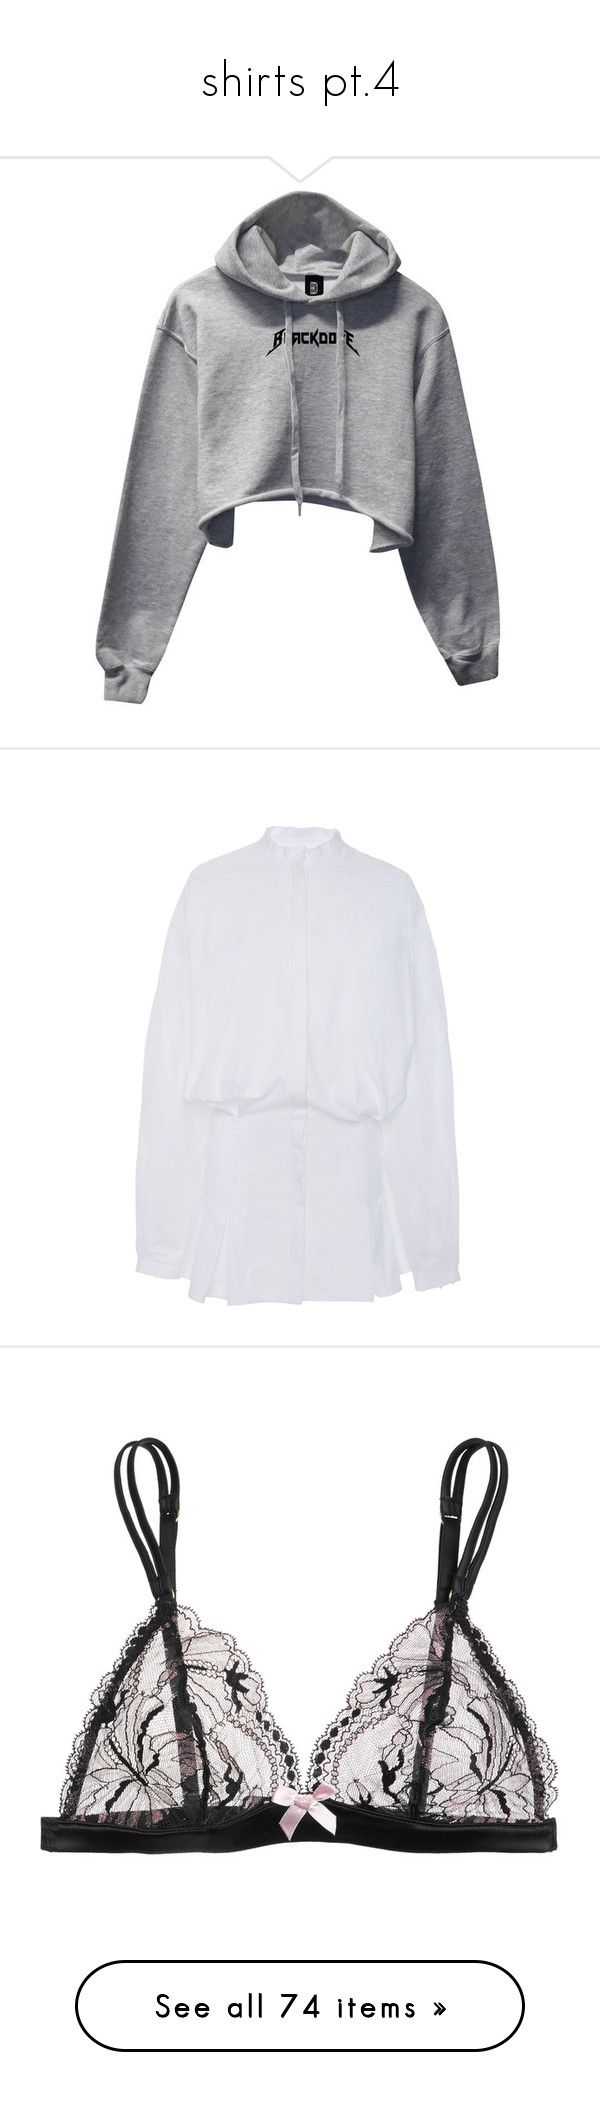 """shirts pt.4"" by blackangels-official ❤ liked on Polyvore featuring outerwear, sweatshirts, tops, ellery, white, puffed sleeve top, puffed sleeve shirt, puffy sleeve shirt, puff shoulder shirt and puff shoulder top"